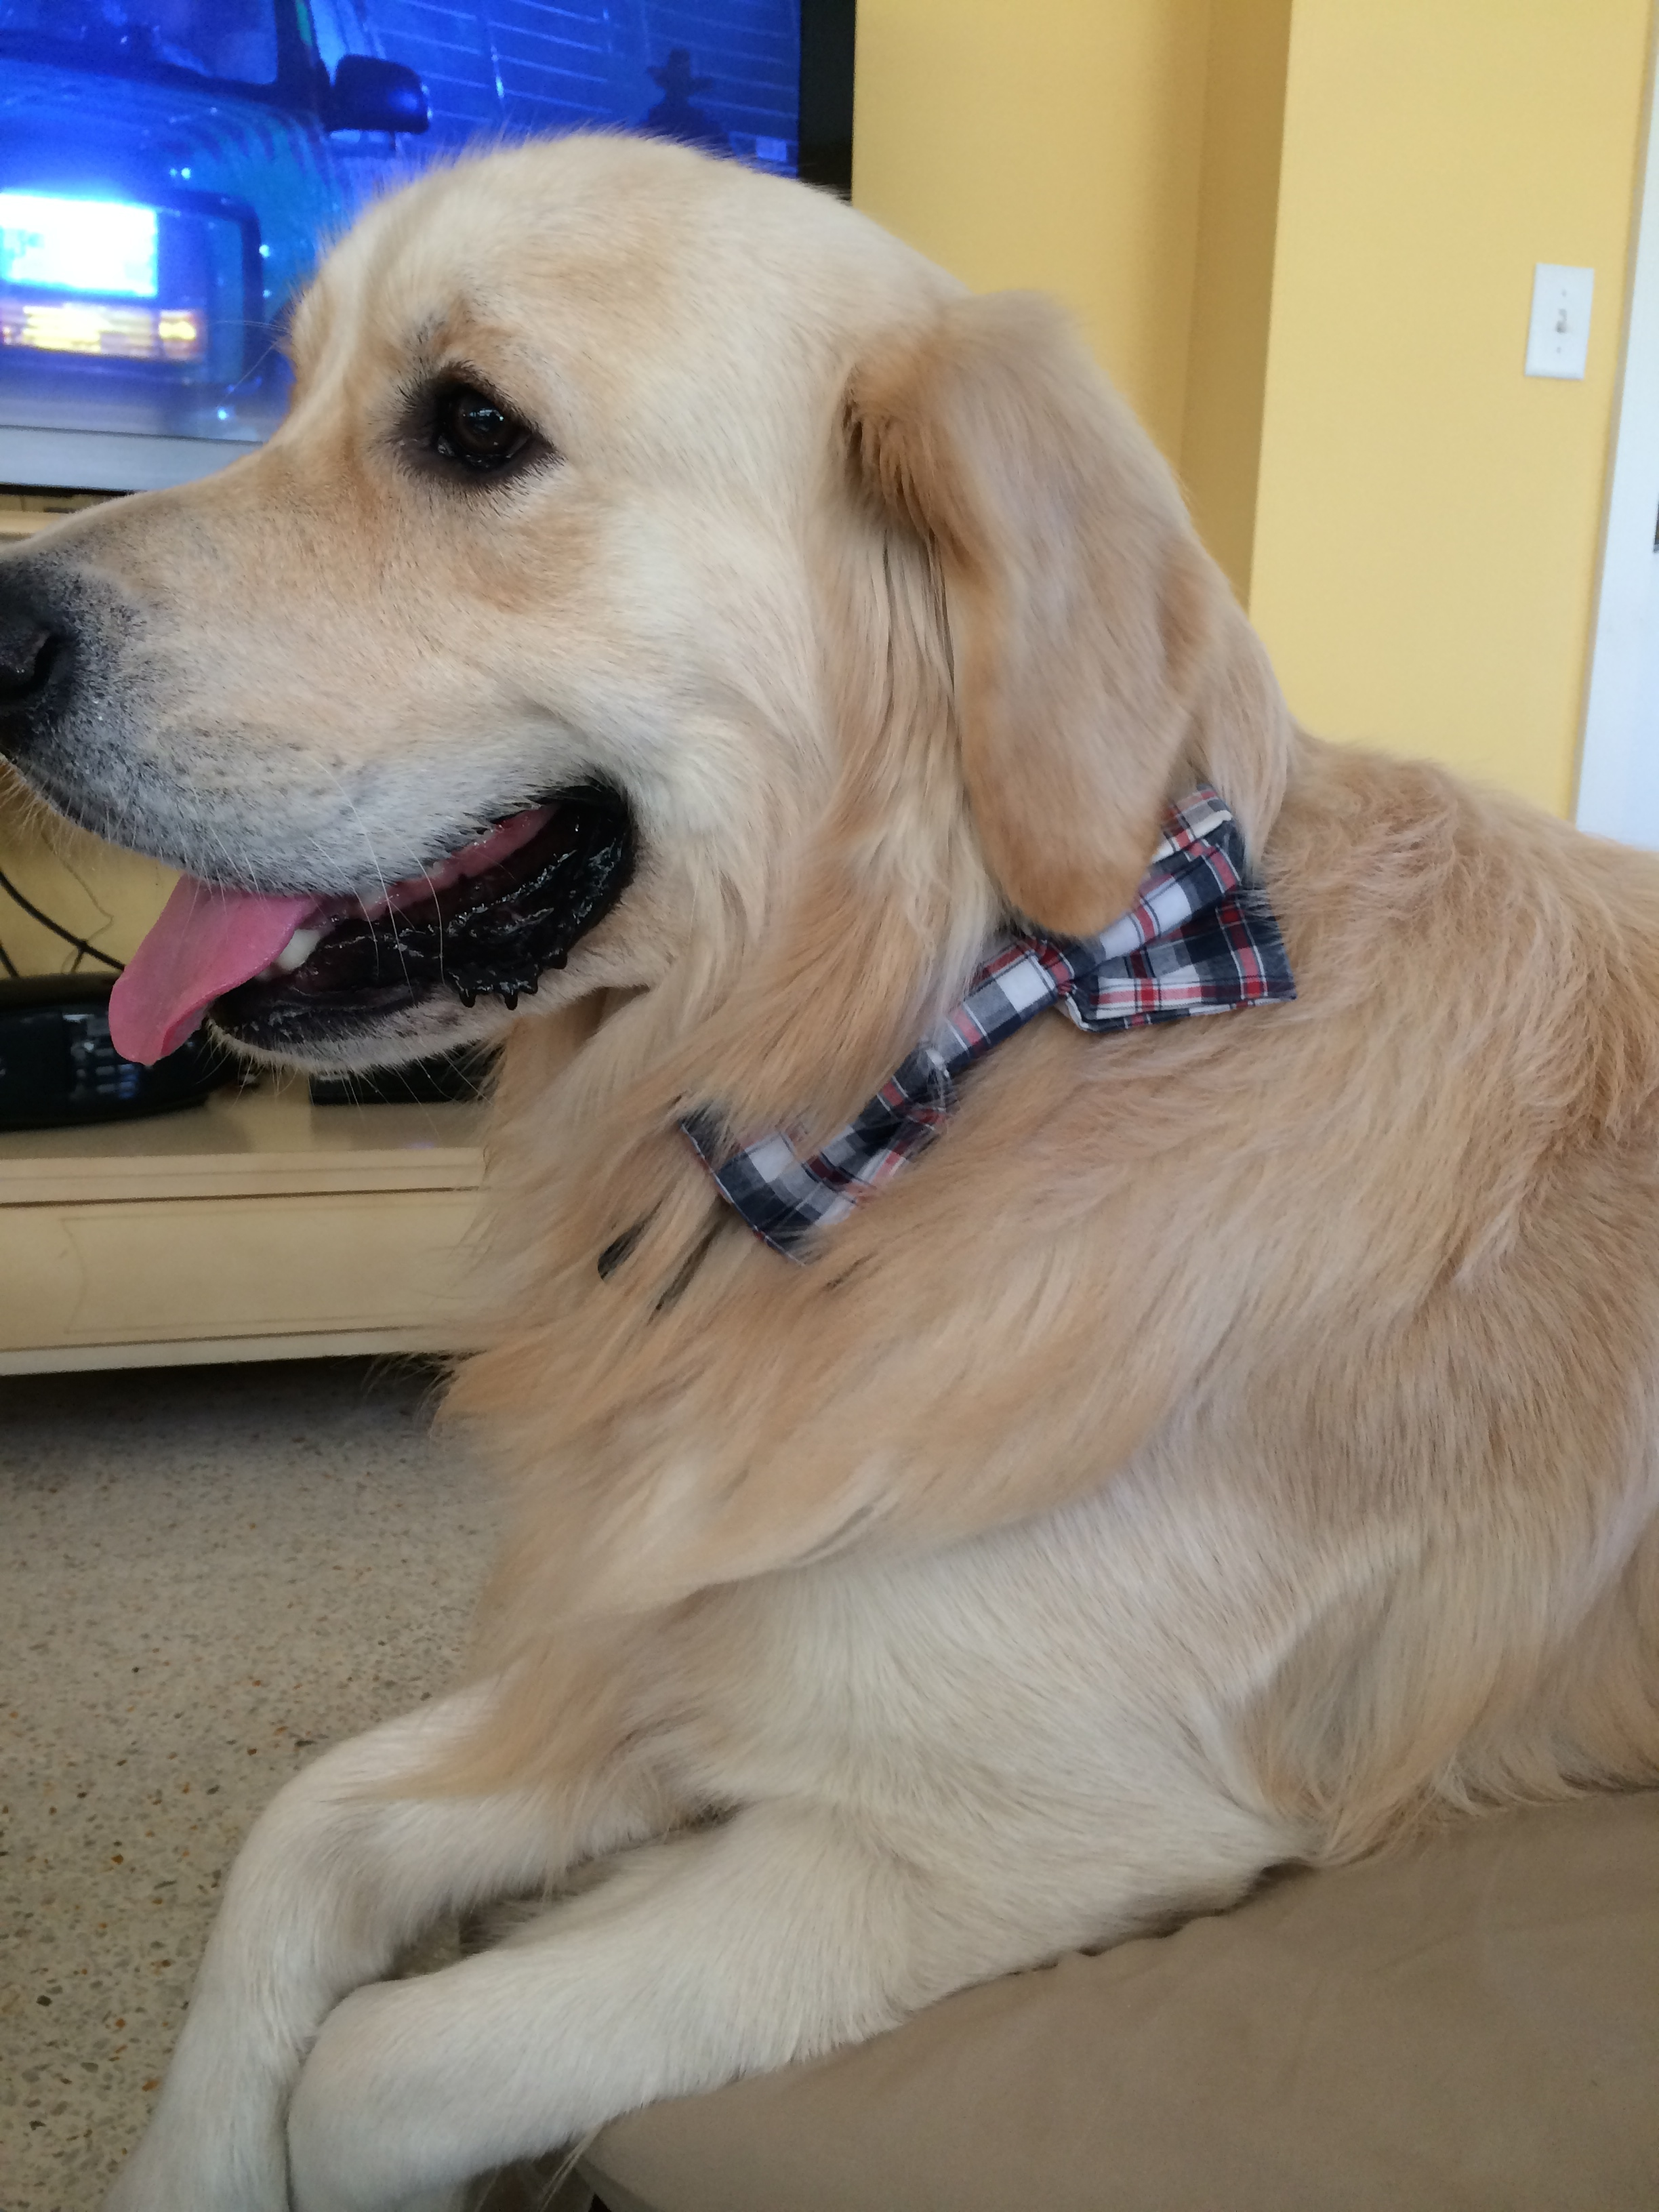 Archie' early Christmas bowtie